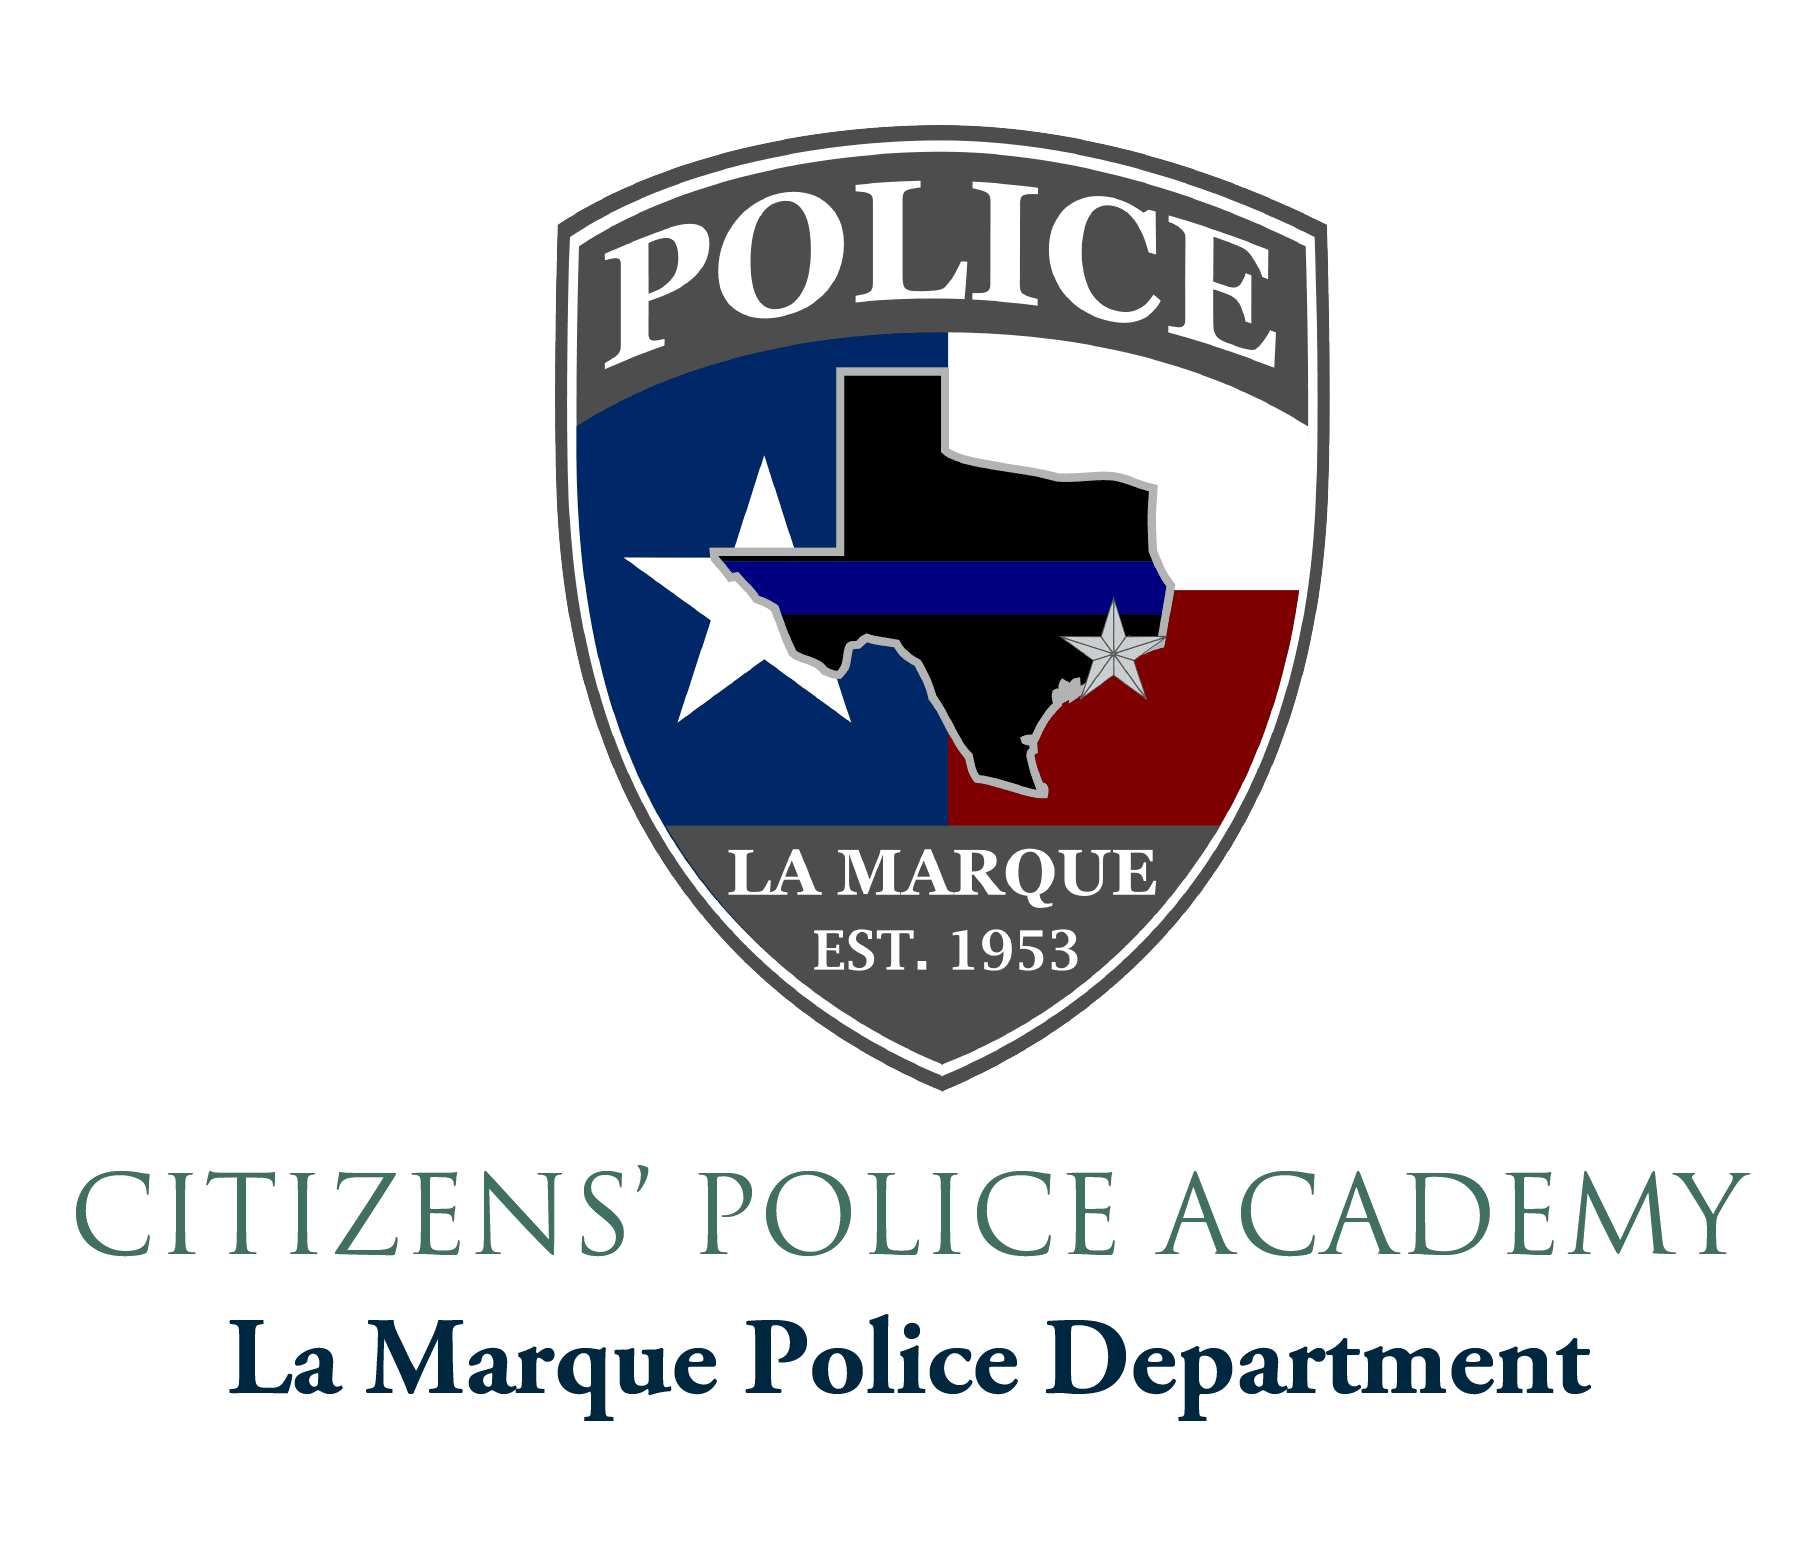 LMPD_Citizens Police Academy